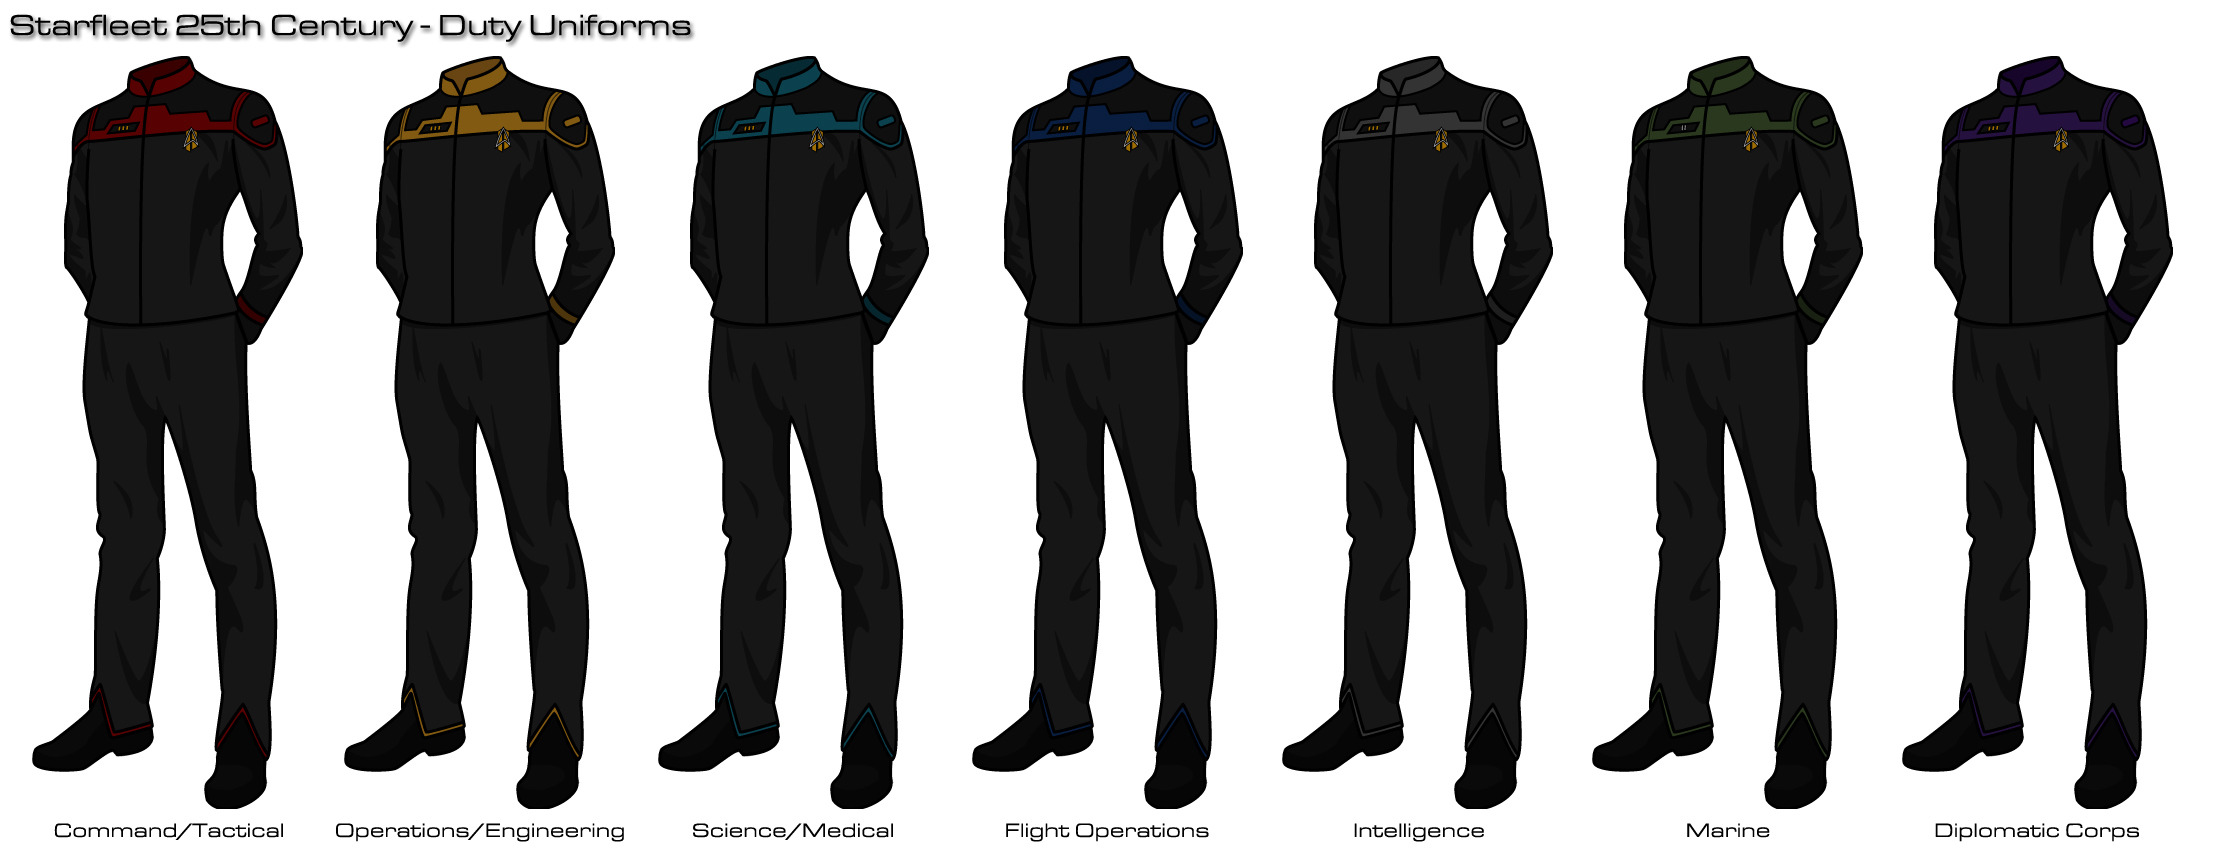 Image Gallery starfleet uniforms 2373